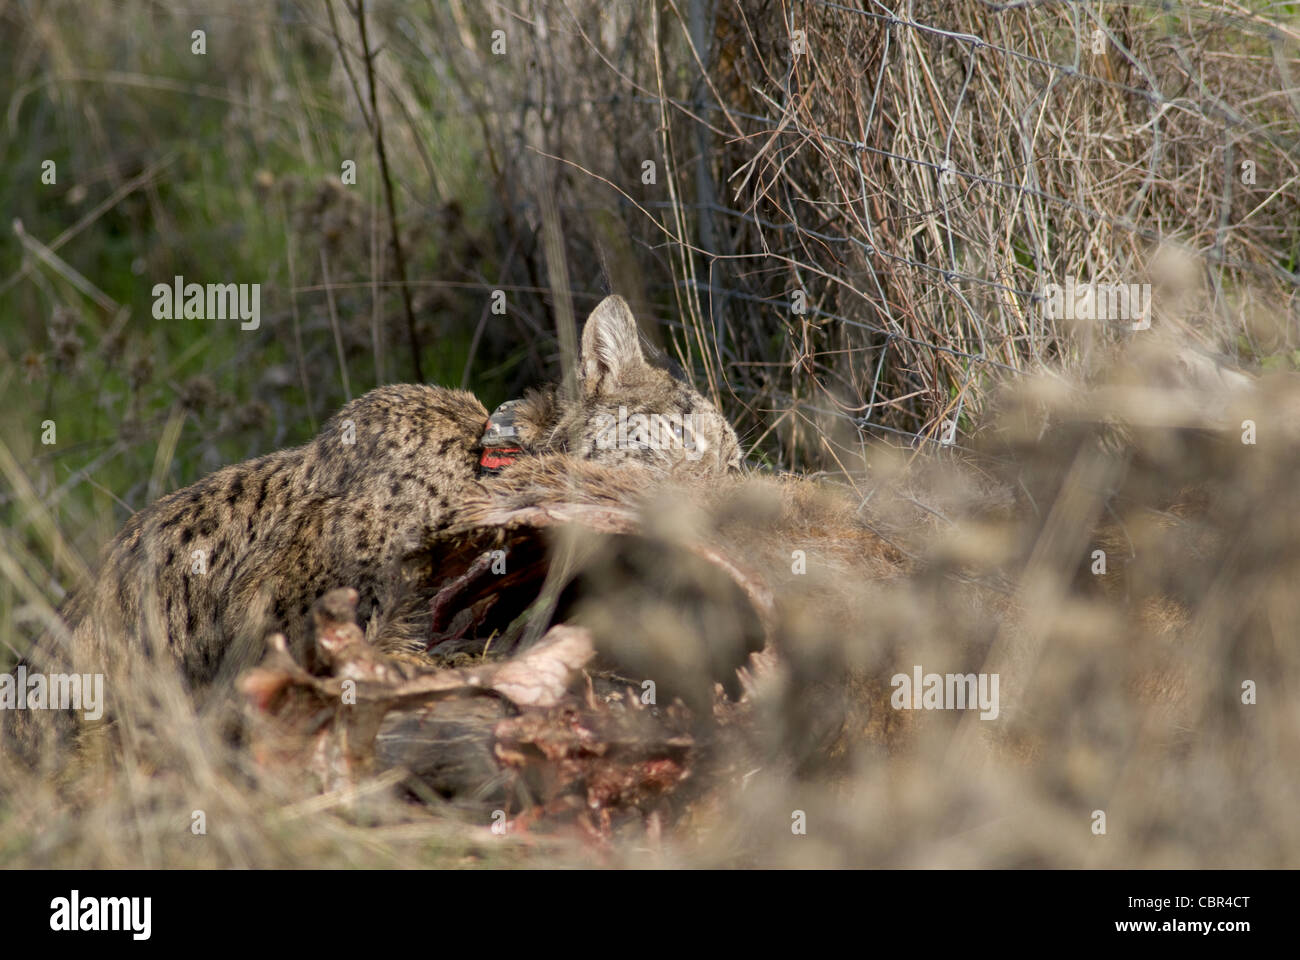 Wild Iberian Lynx feeding on carcass of red deer trapped in wire fence Stock Photo